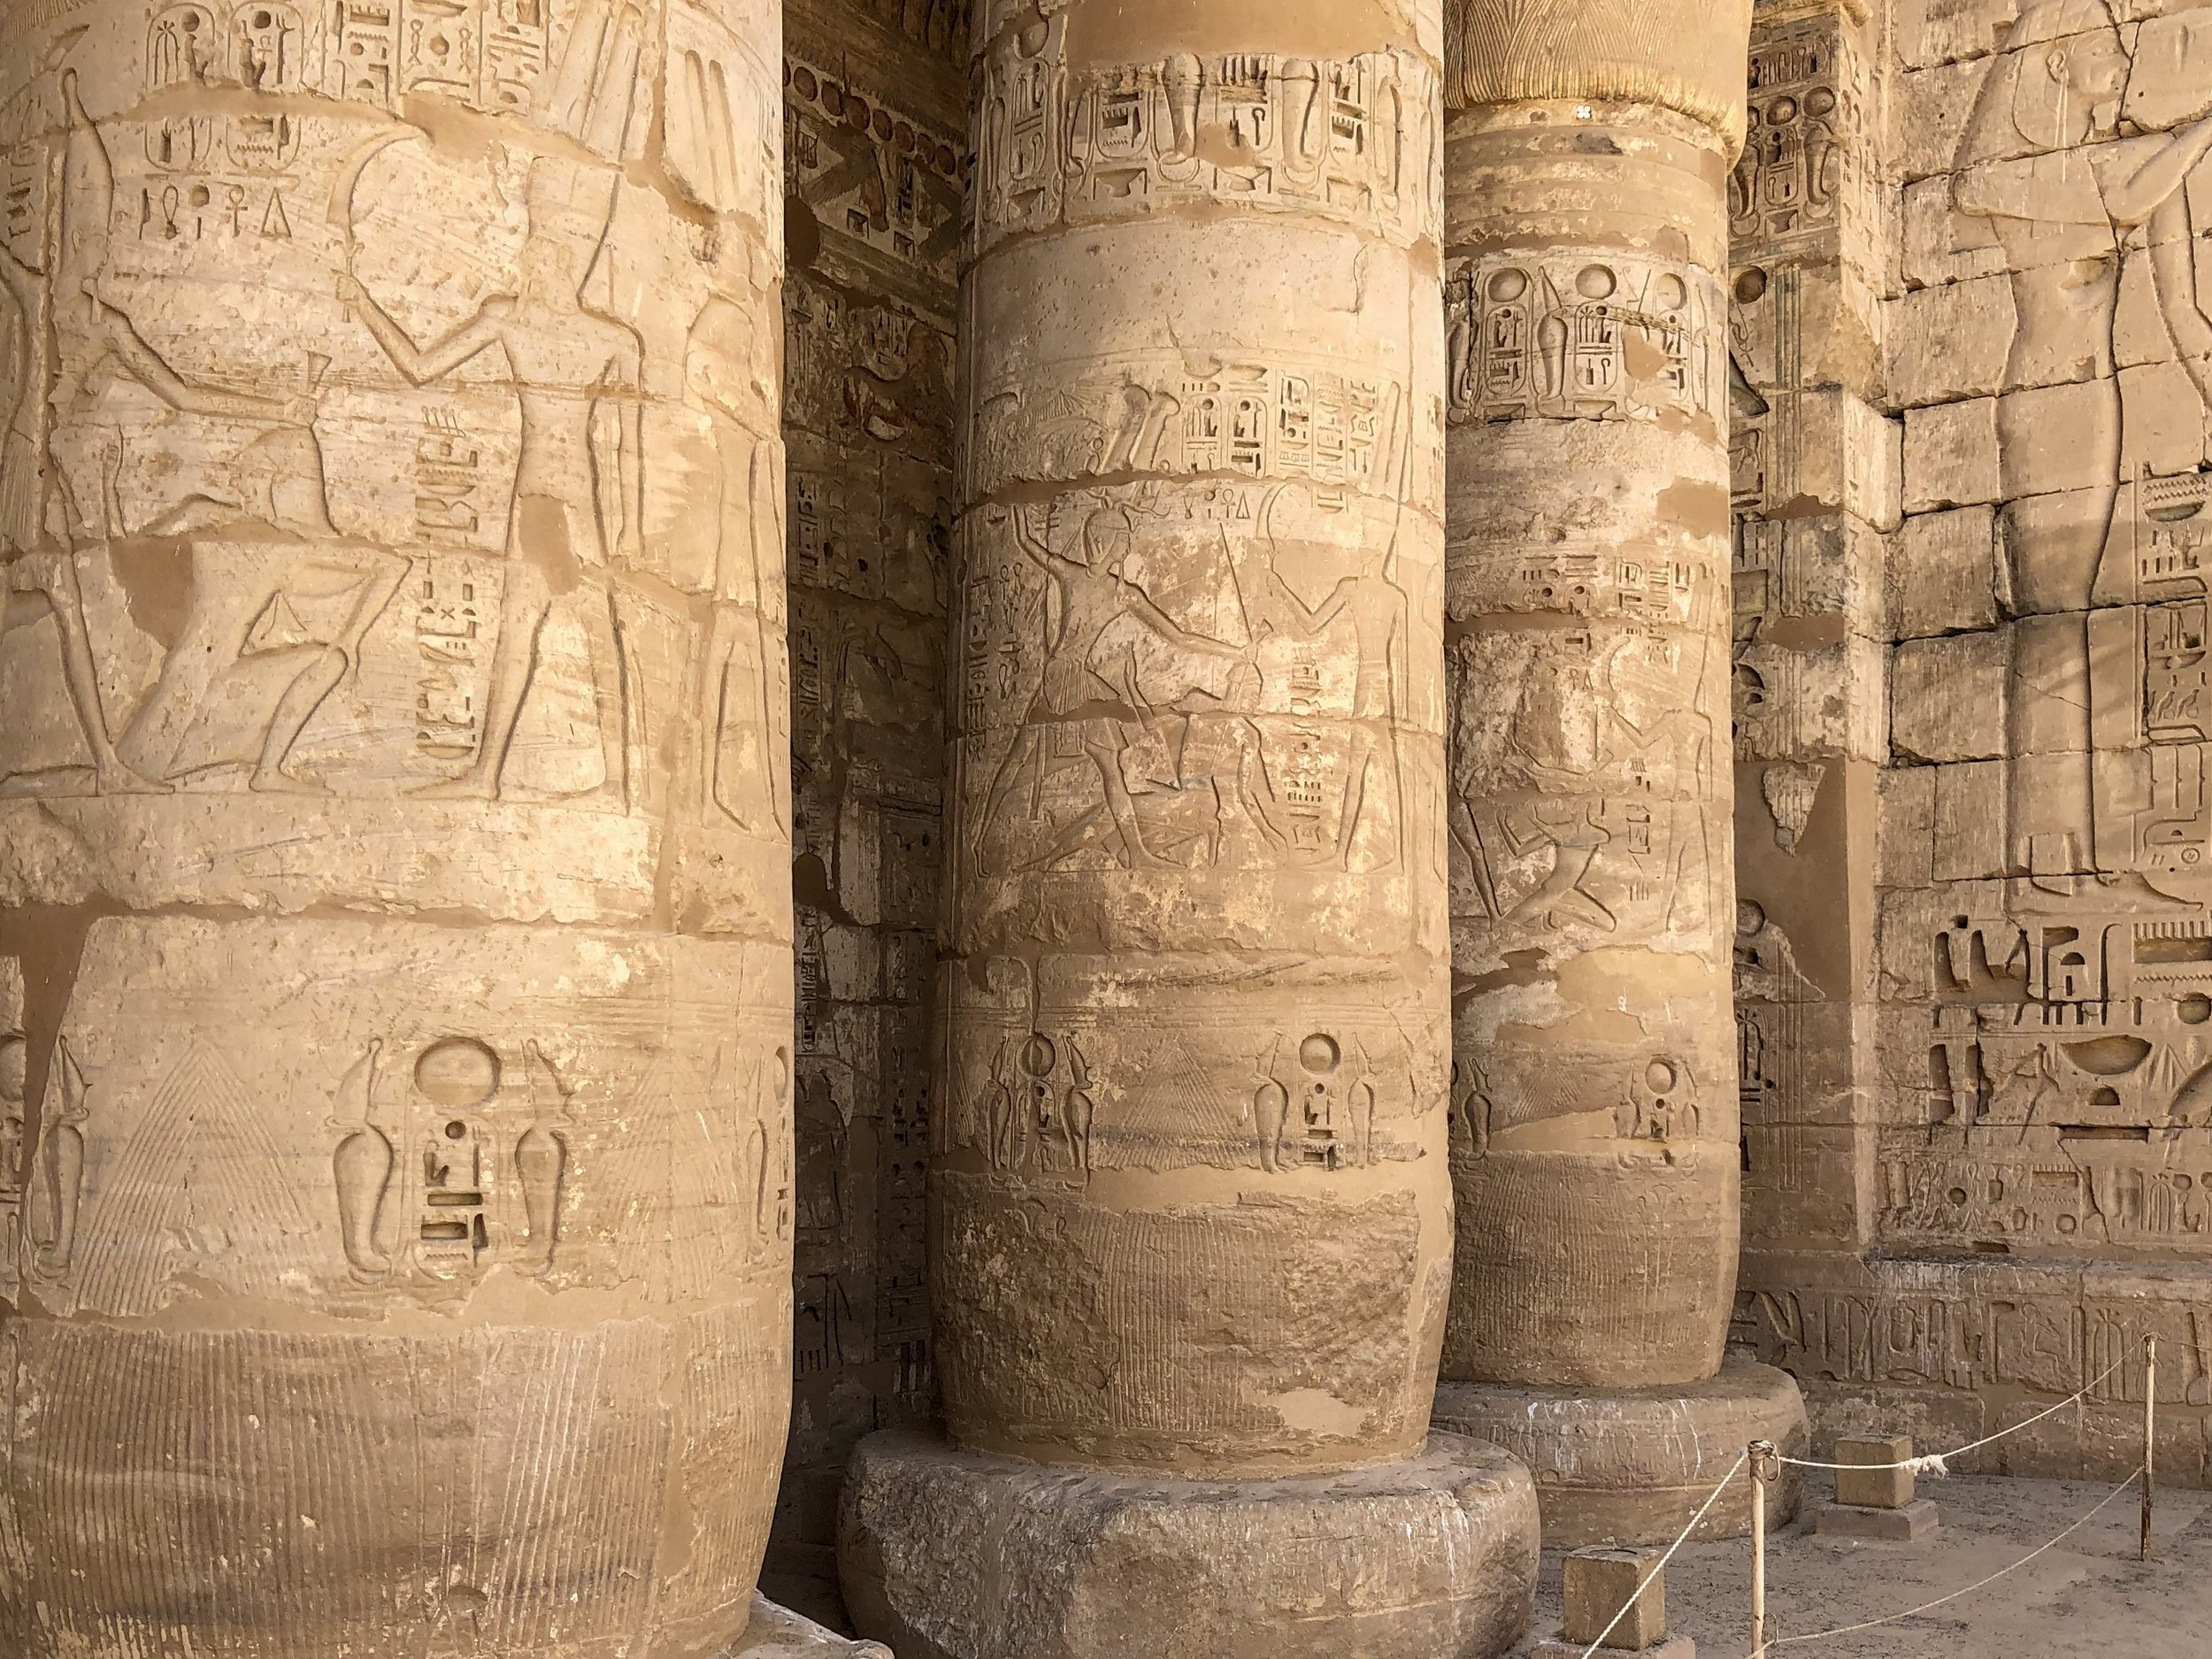 Medinet Habu includes a larger version of the Ramesseum. Seems like Ramesses III had to one-up his father